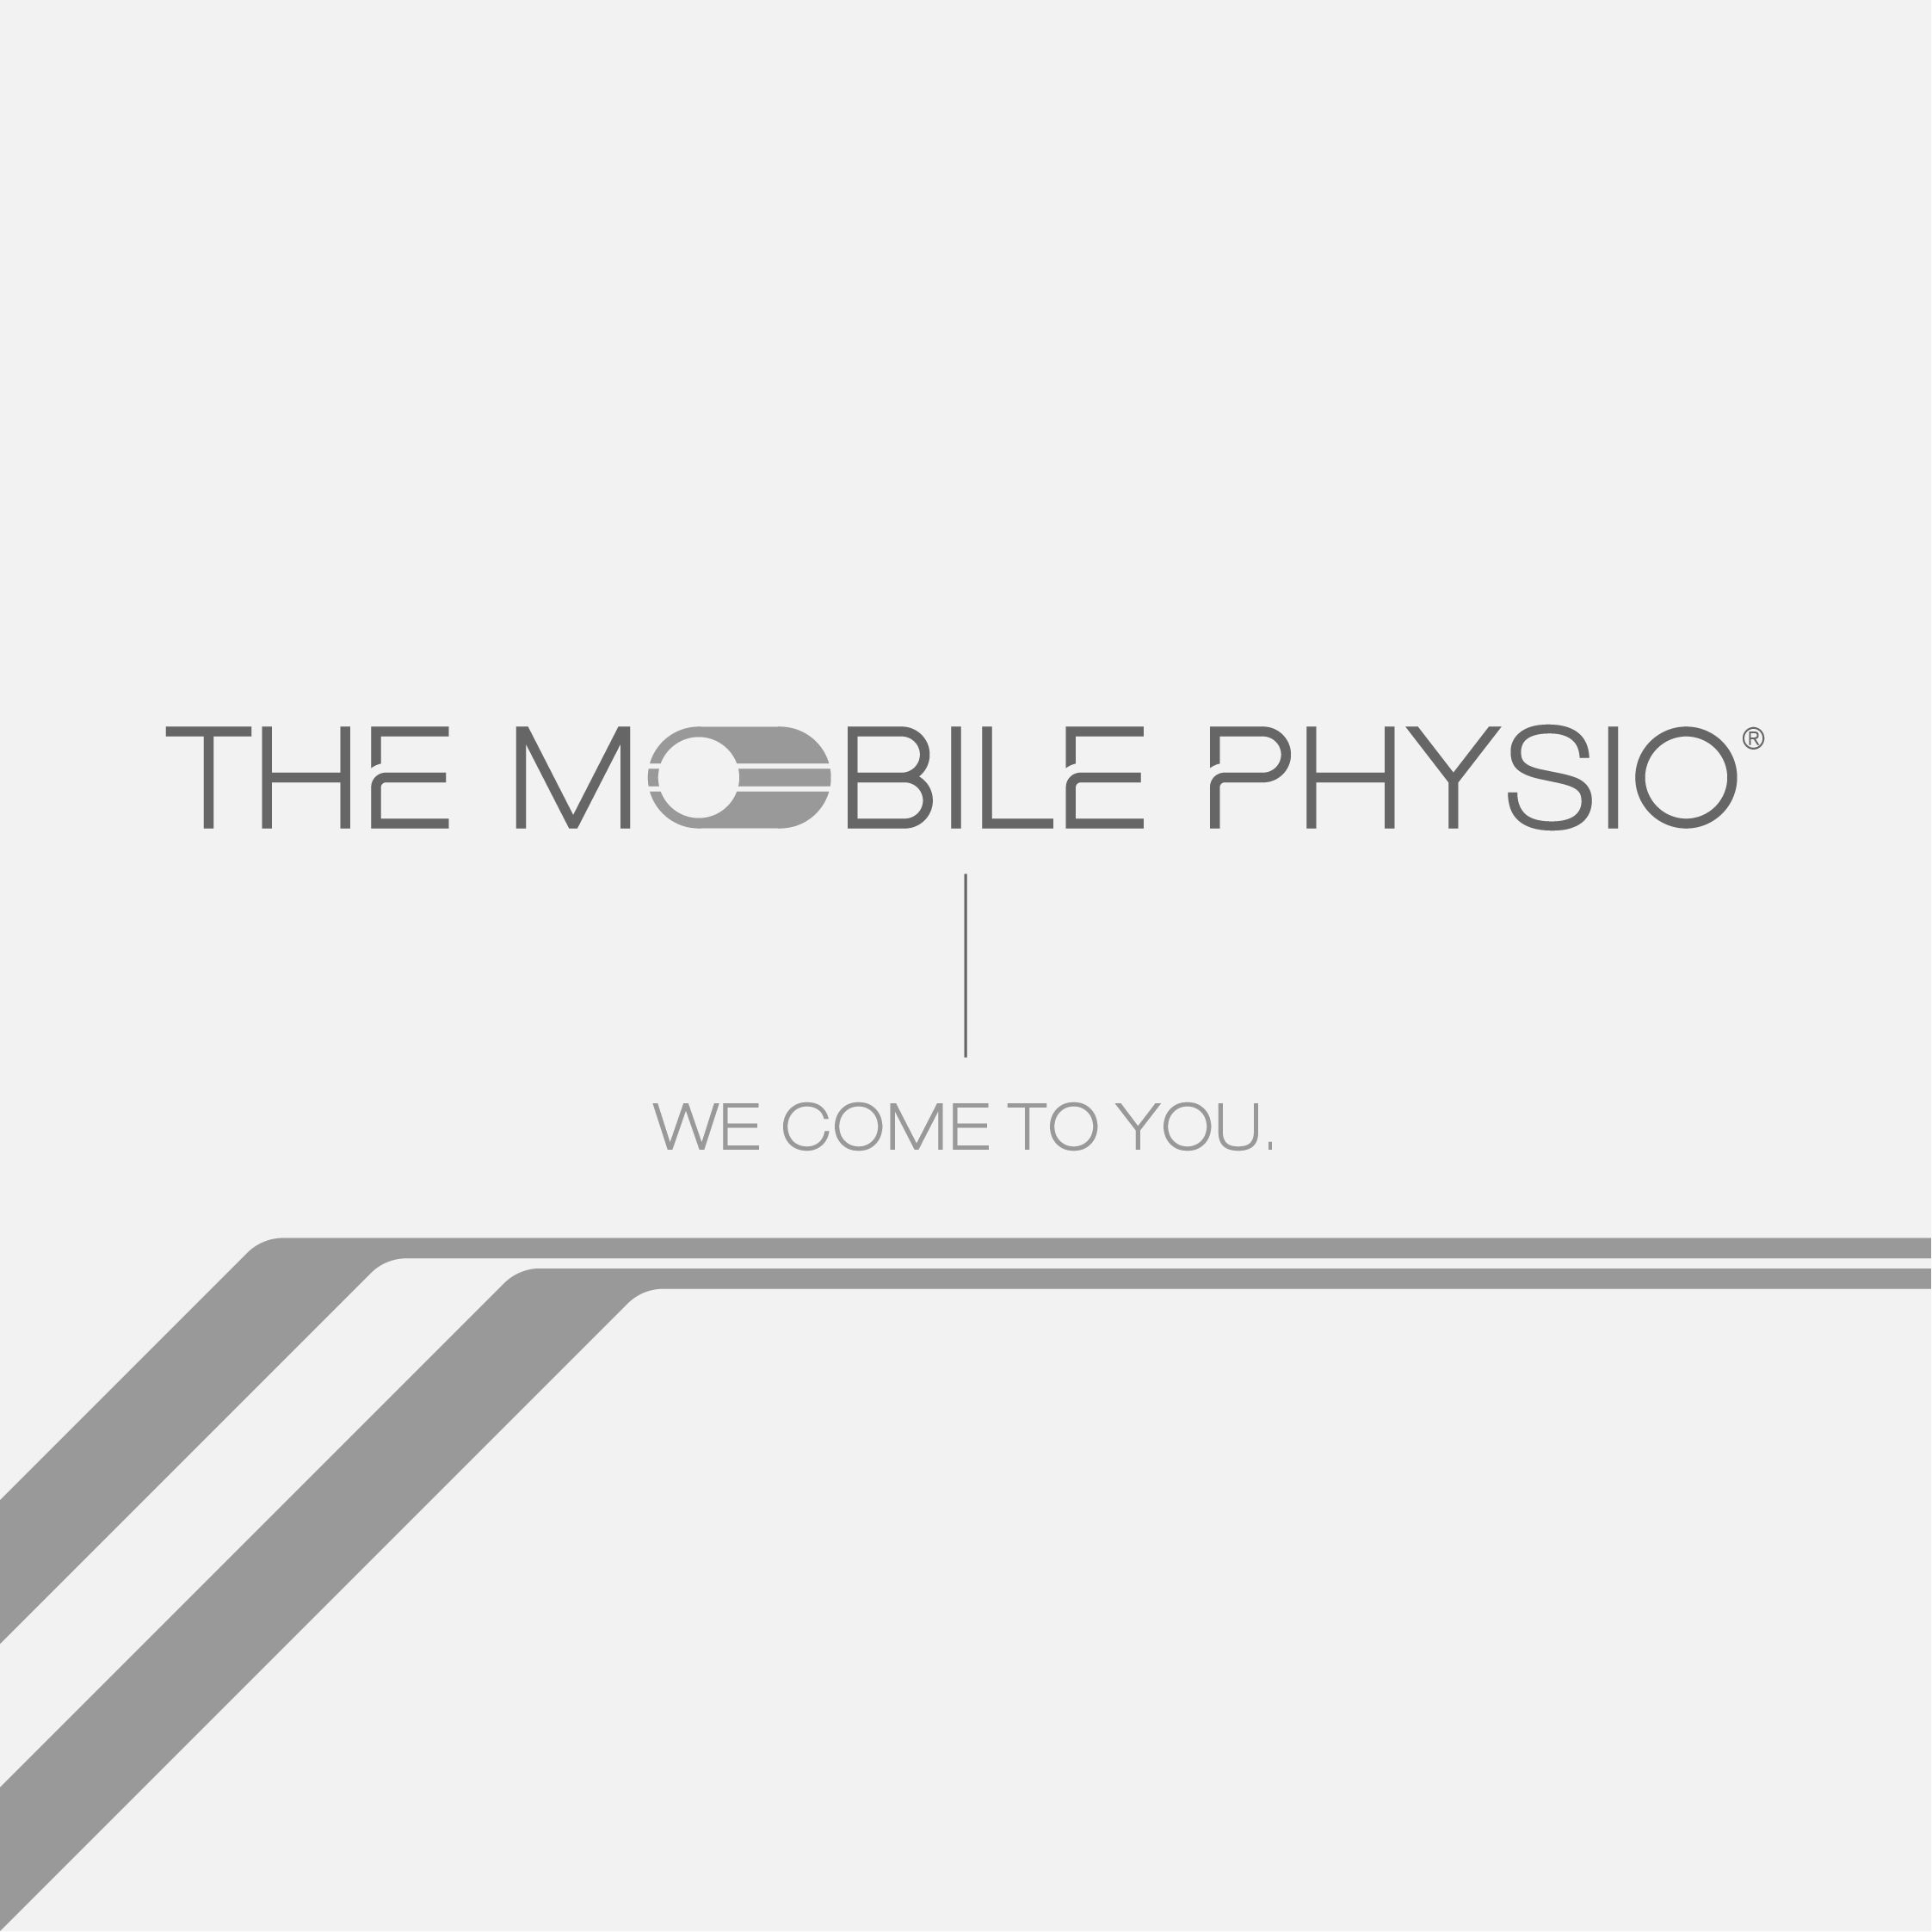 The Mobile Physio